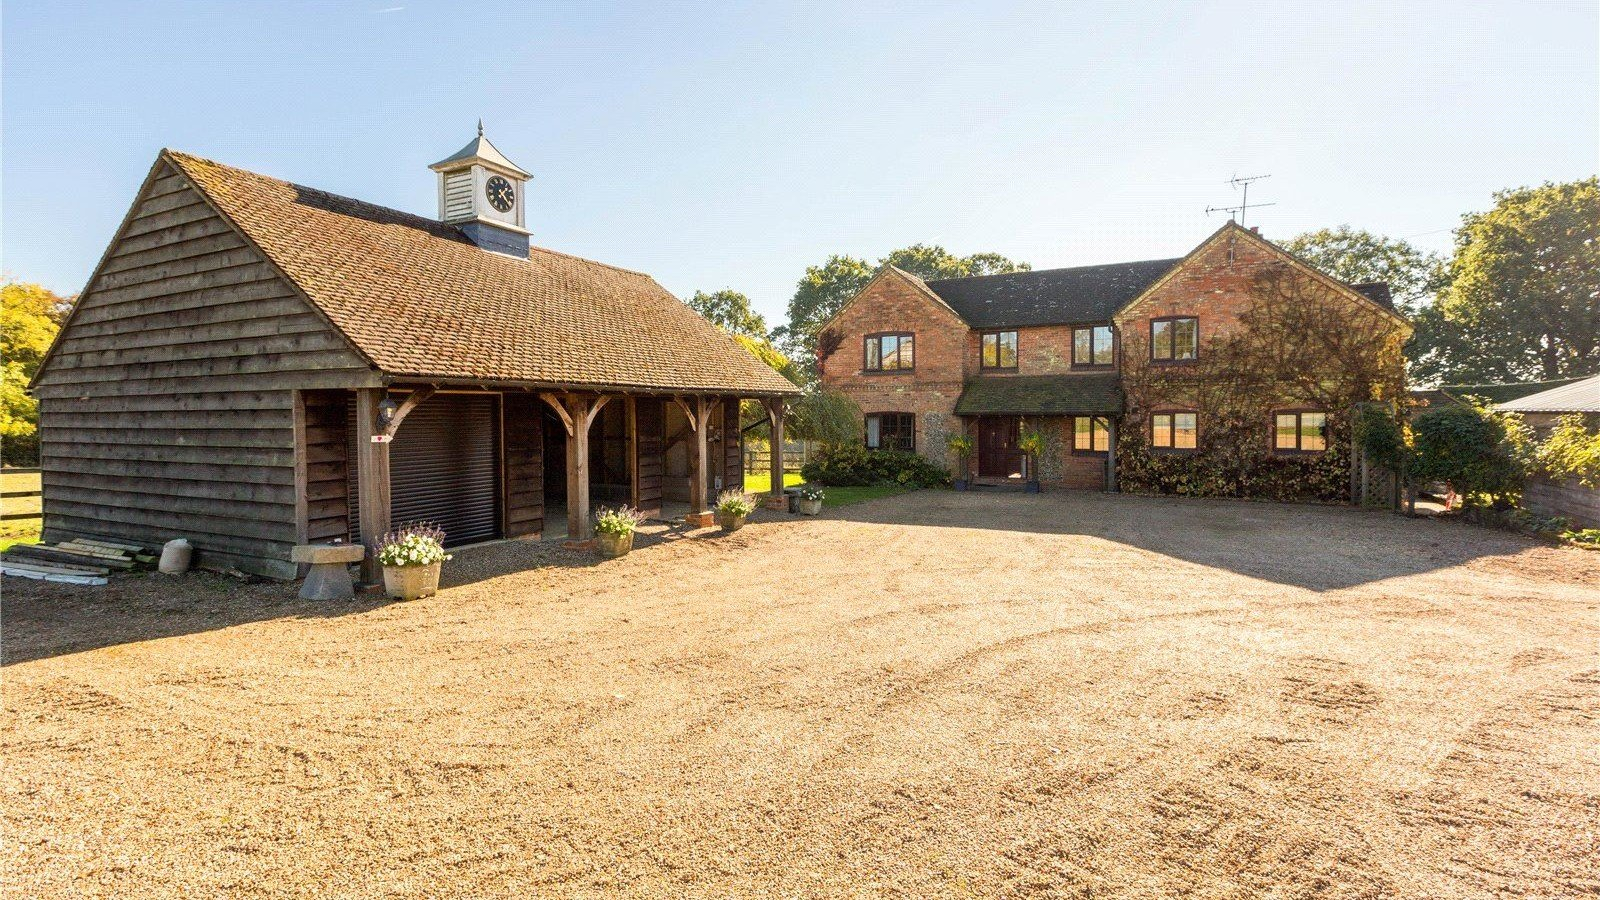 Property for sale Chinnor Hill Chinnor Oxfordshire OX39